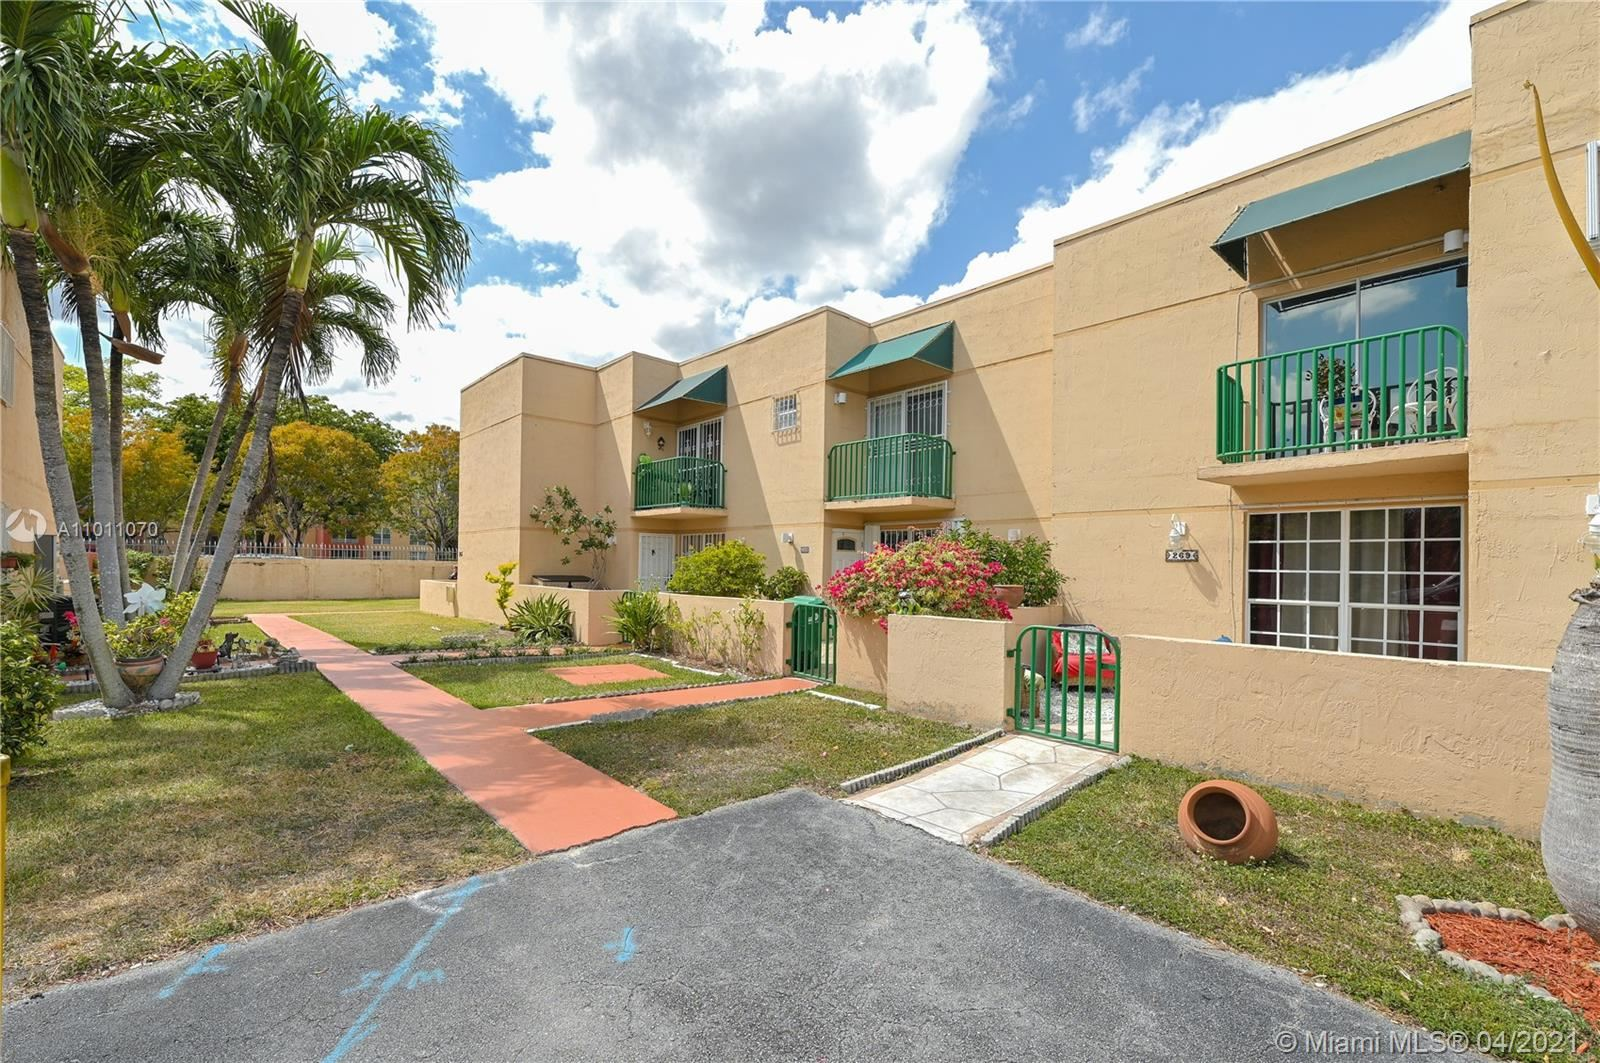 12095 SW 18th Ter #266, Miami, FL 33175 - #: A11011070